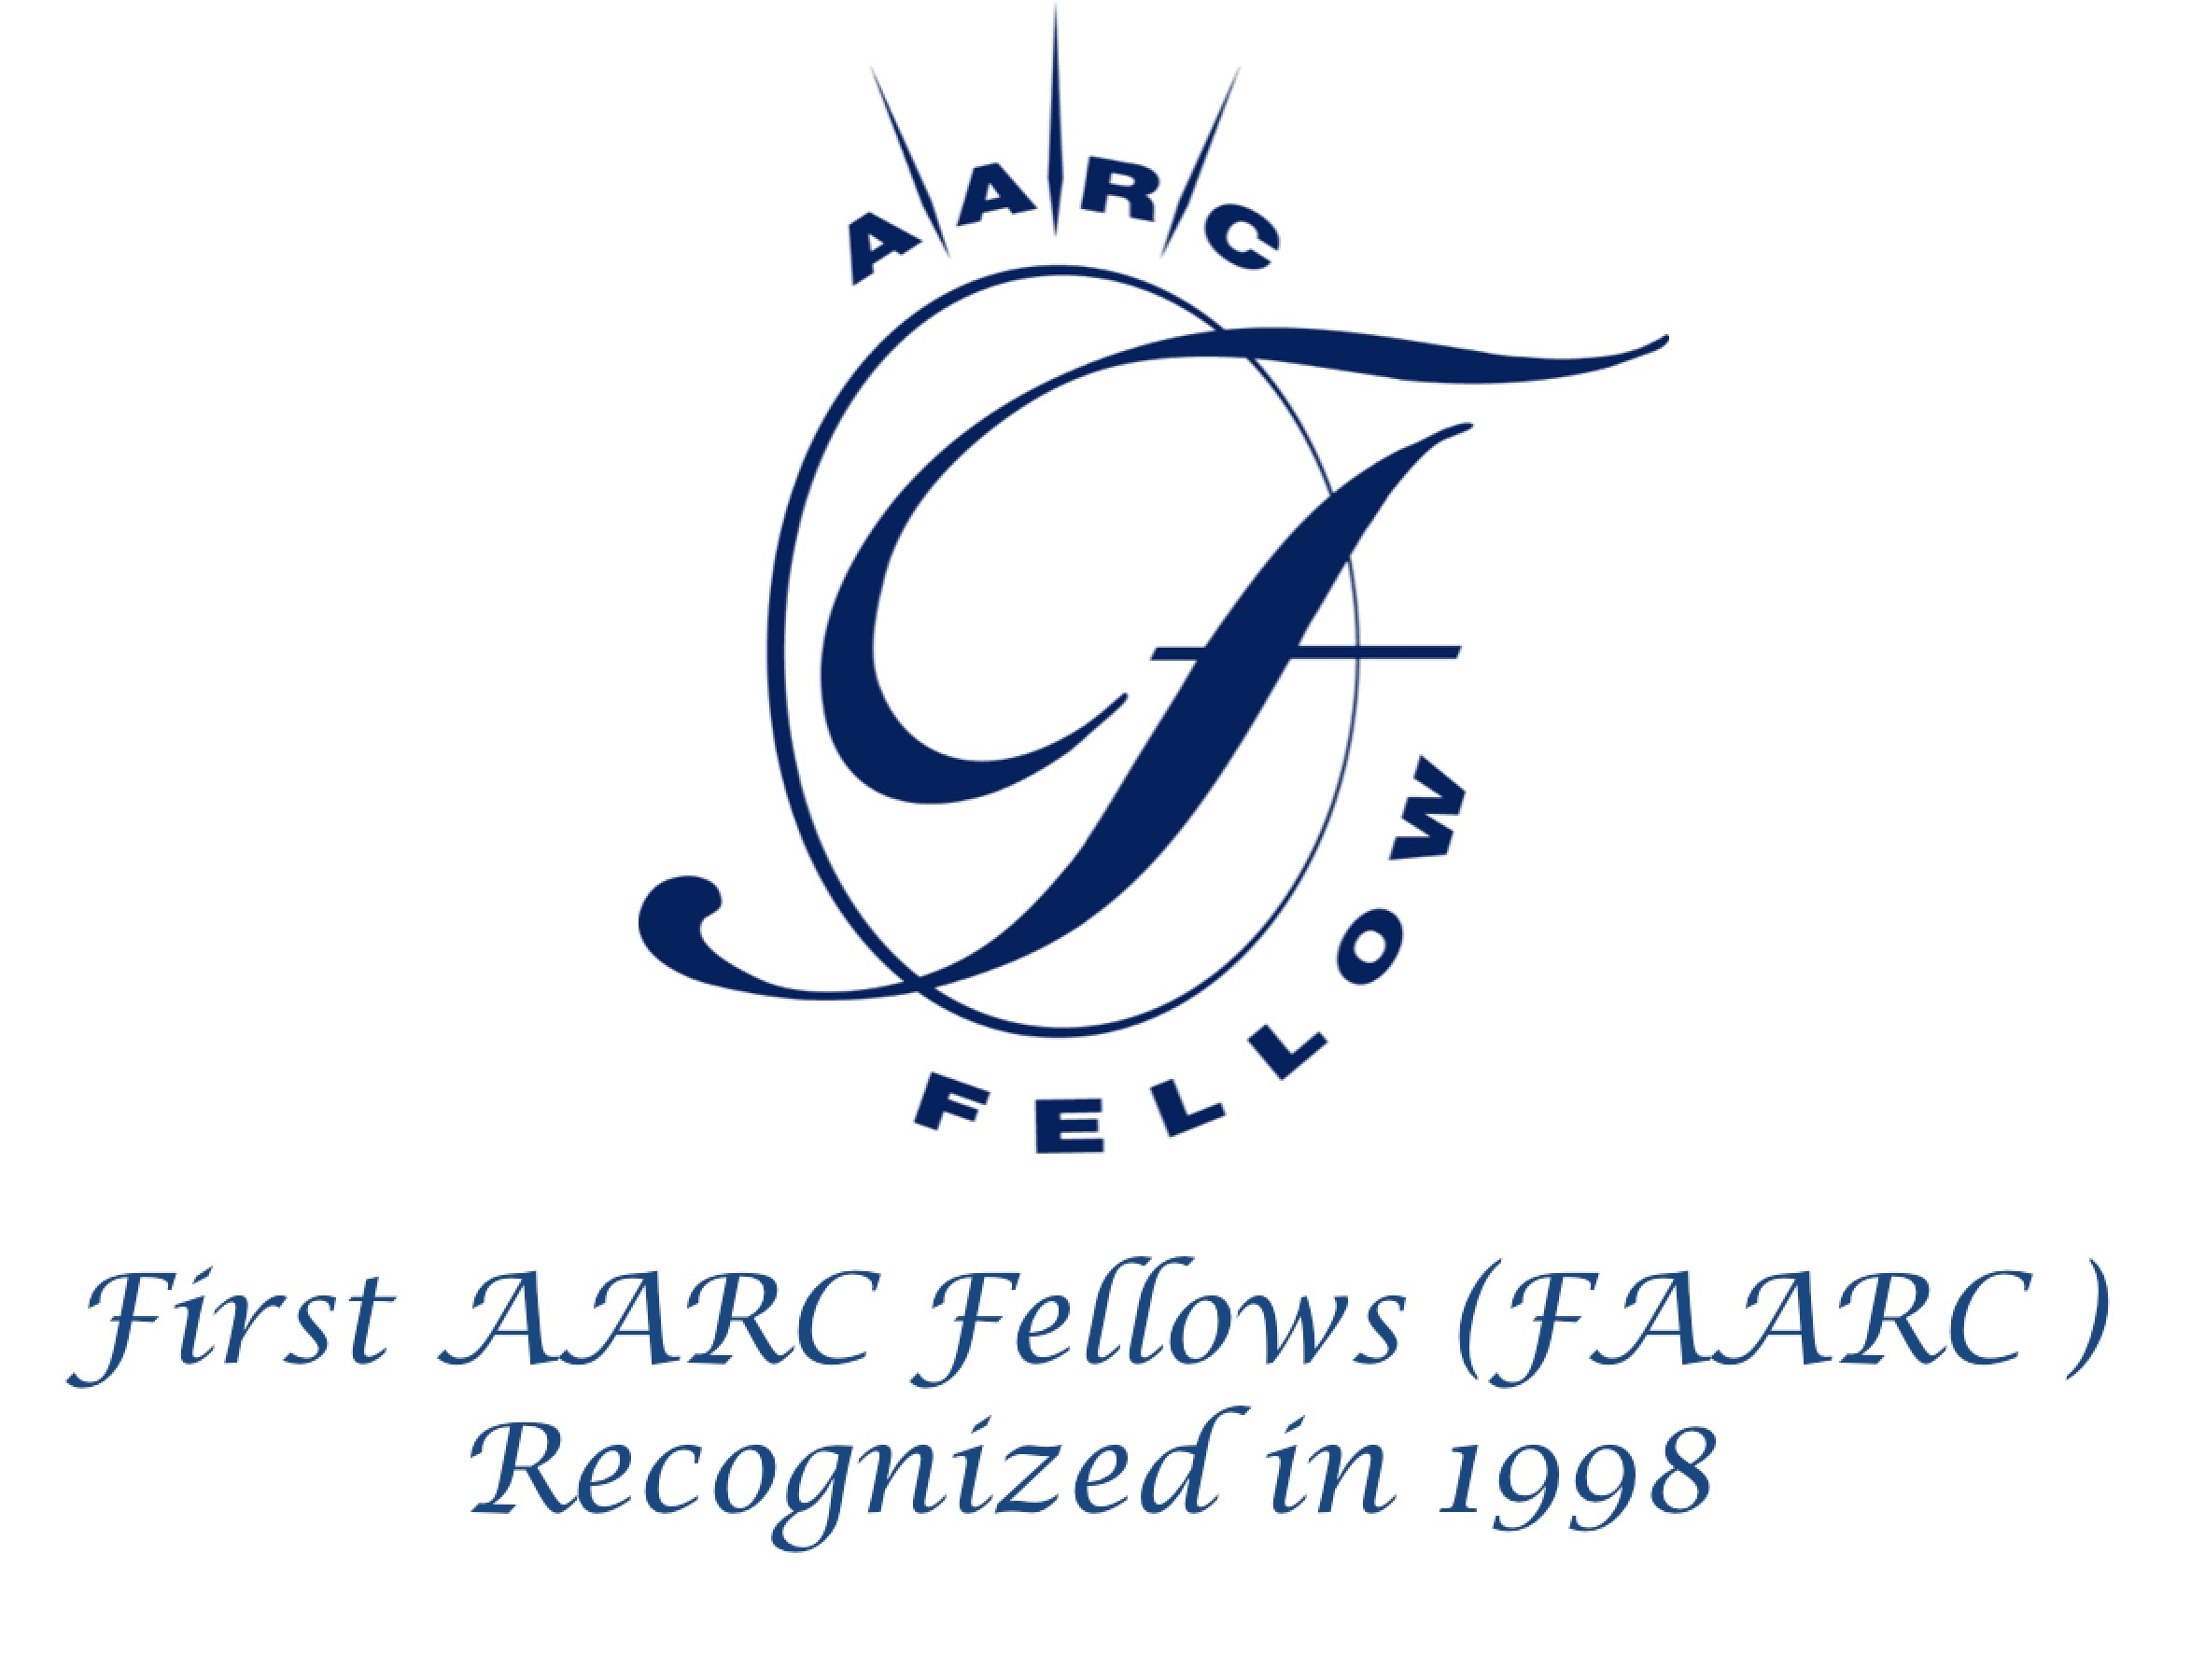 1998 AARC Fellows (FAARC)